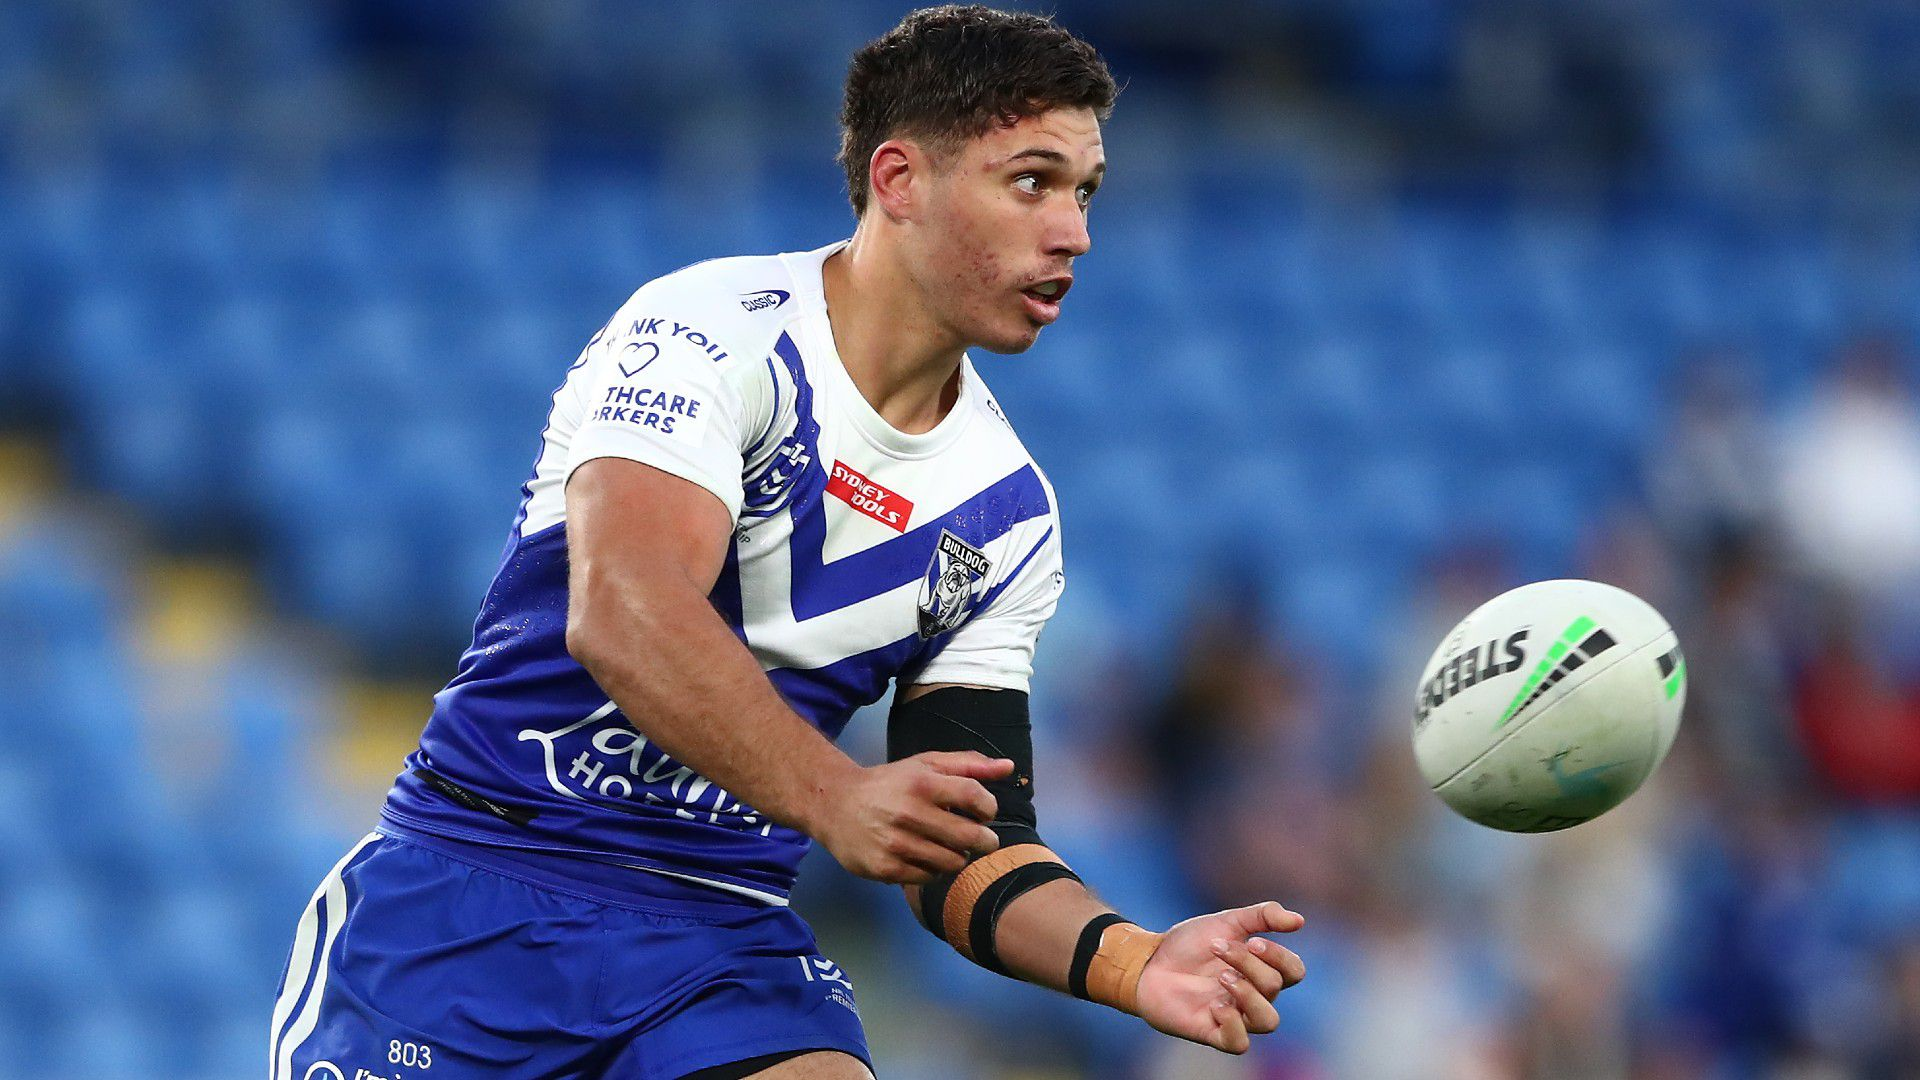 EXCLUSIVE: One big missing piece of the puzzle for Canterbury Bulldogs, Andrew Johns says